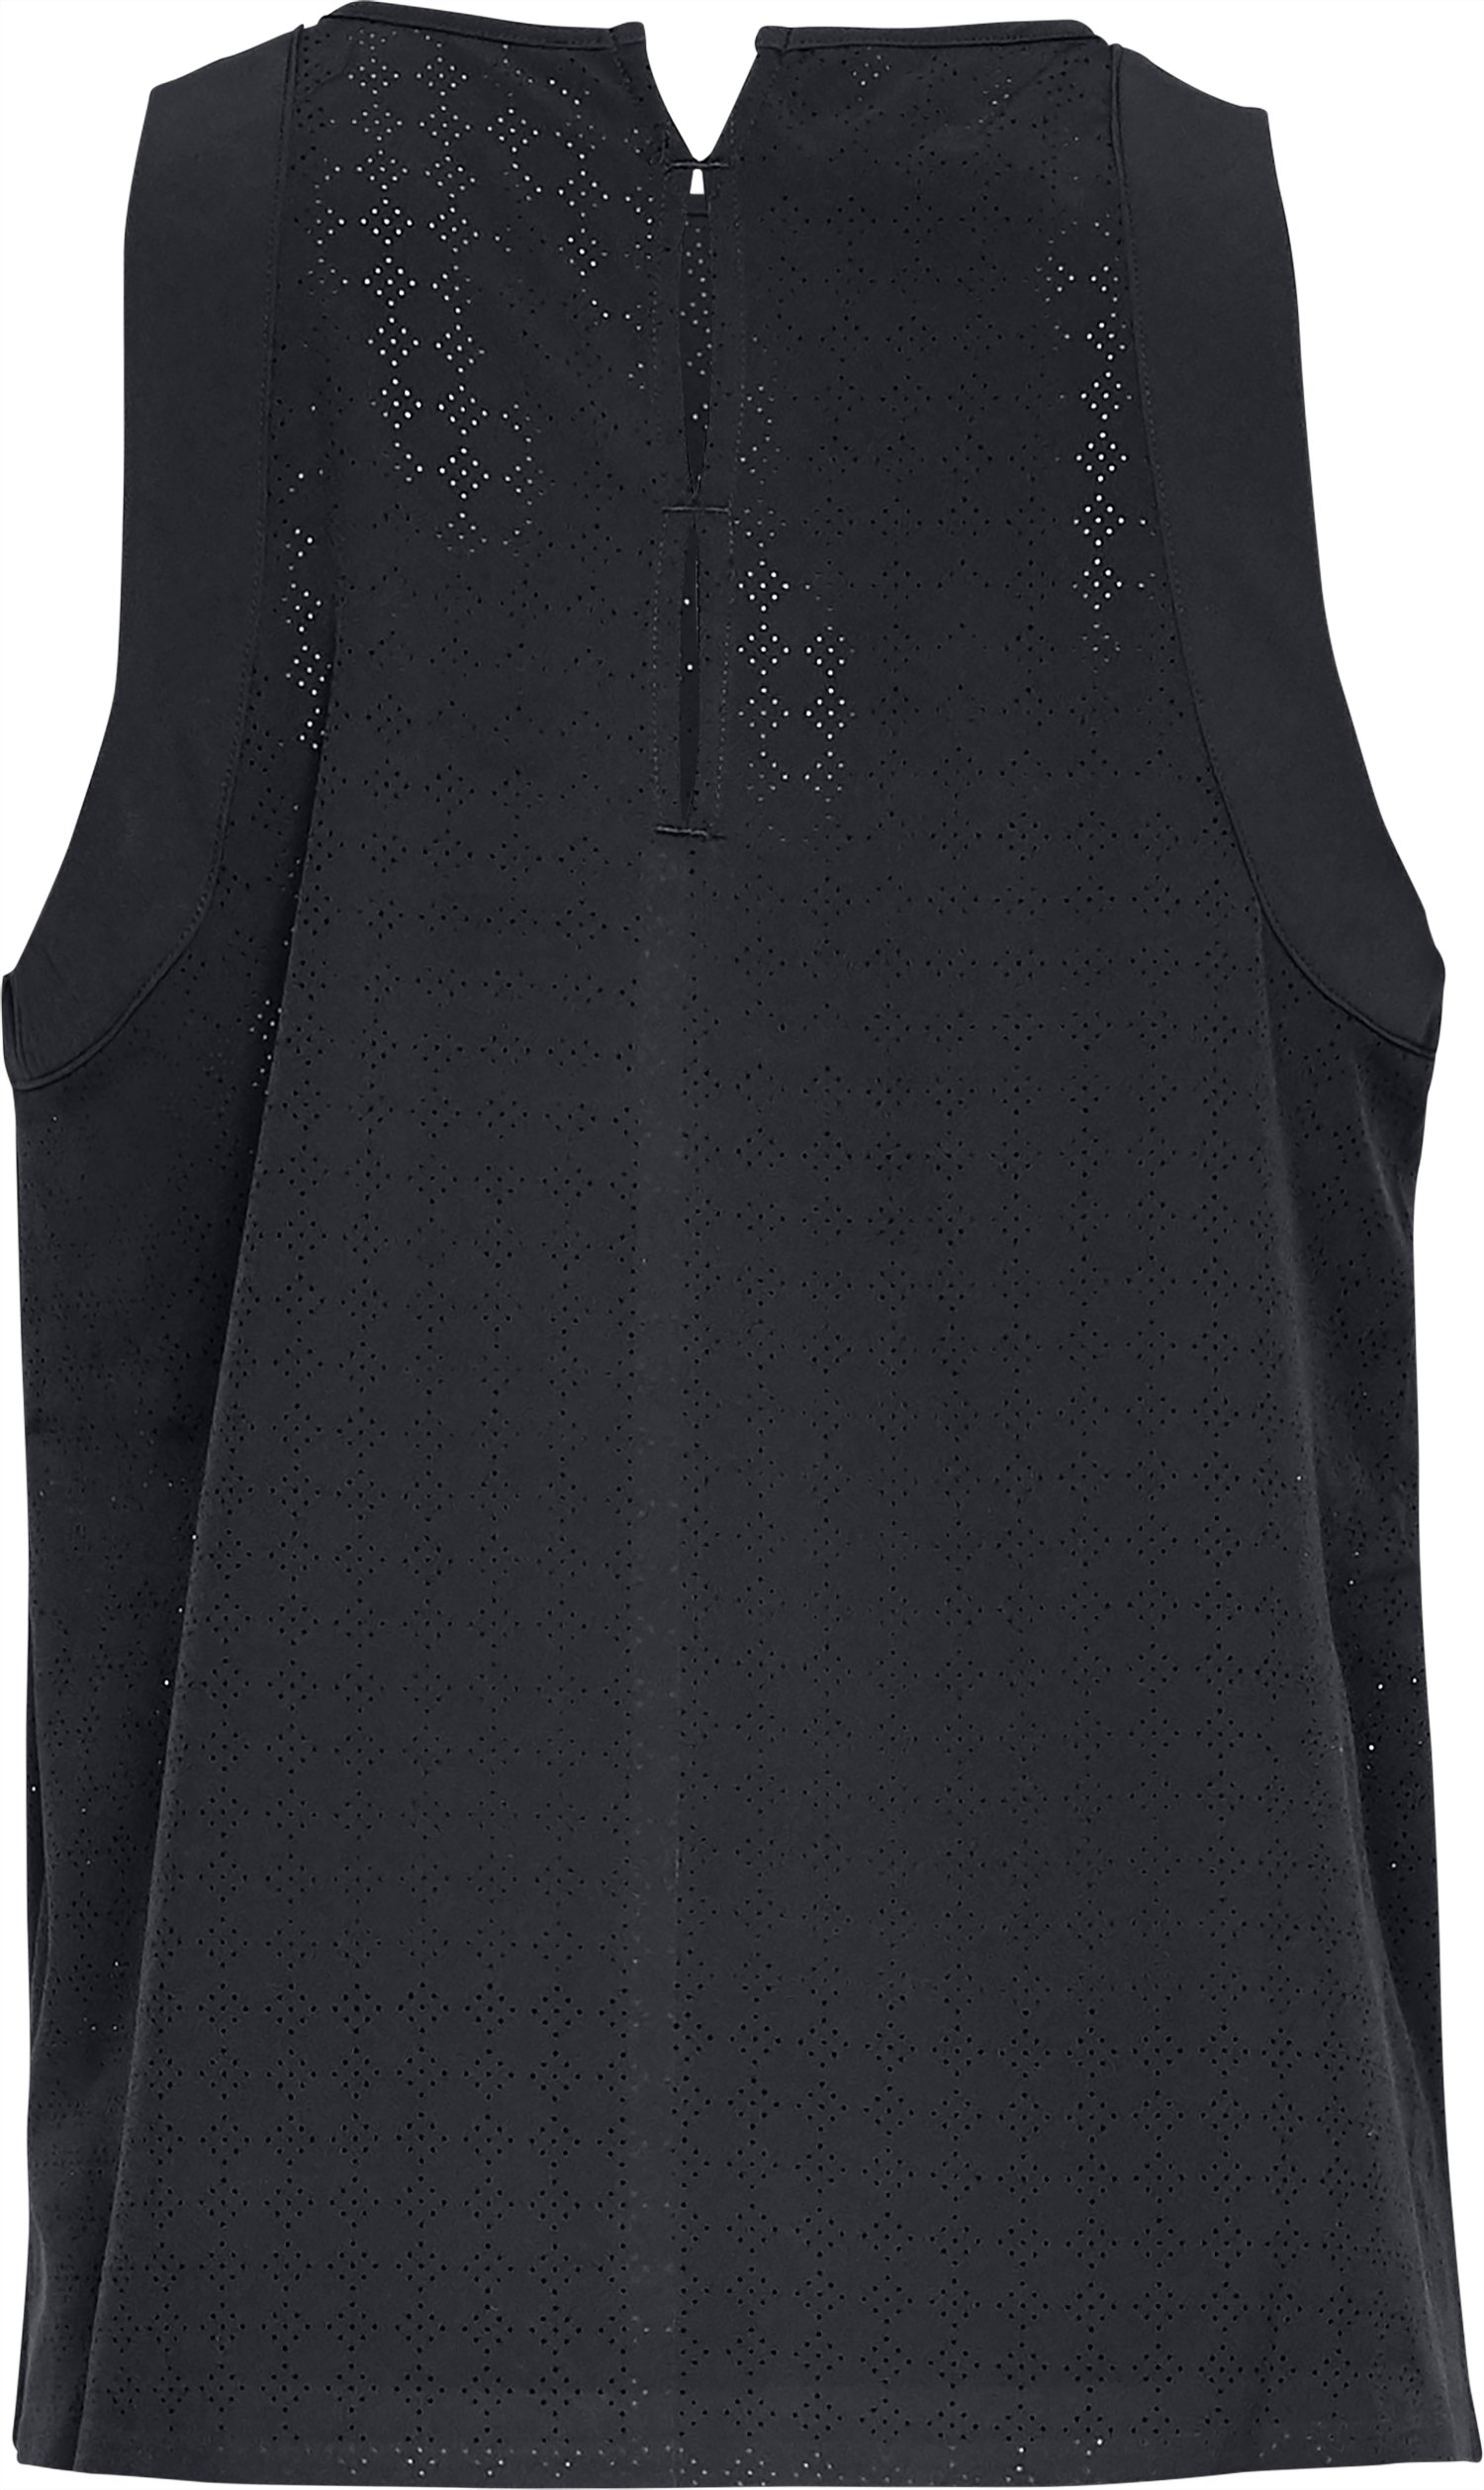 Women's Misty Copeland Signature Woven Tank, Black ,